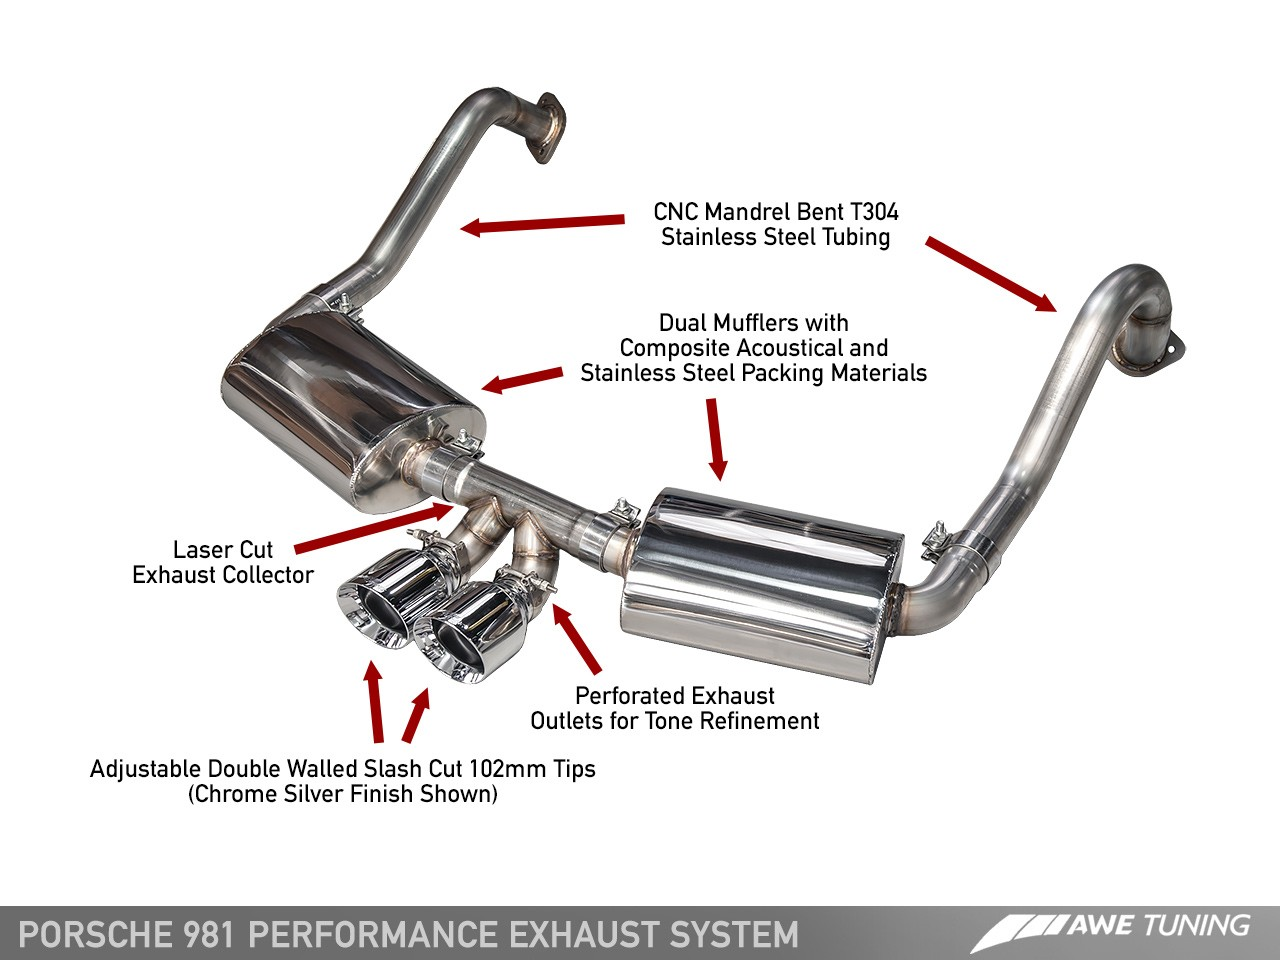 jeep wrangler rubicon exhaust system diagram  jeep  free